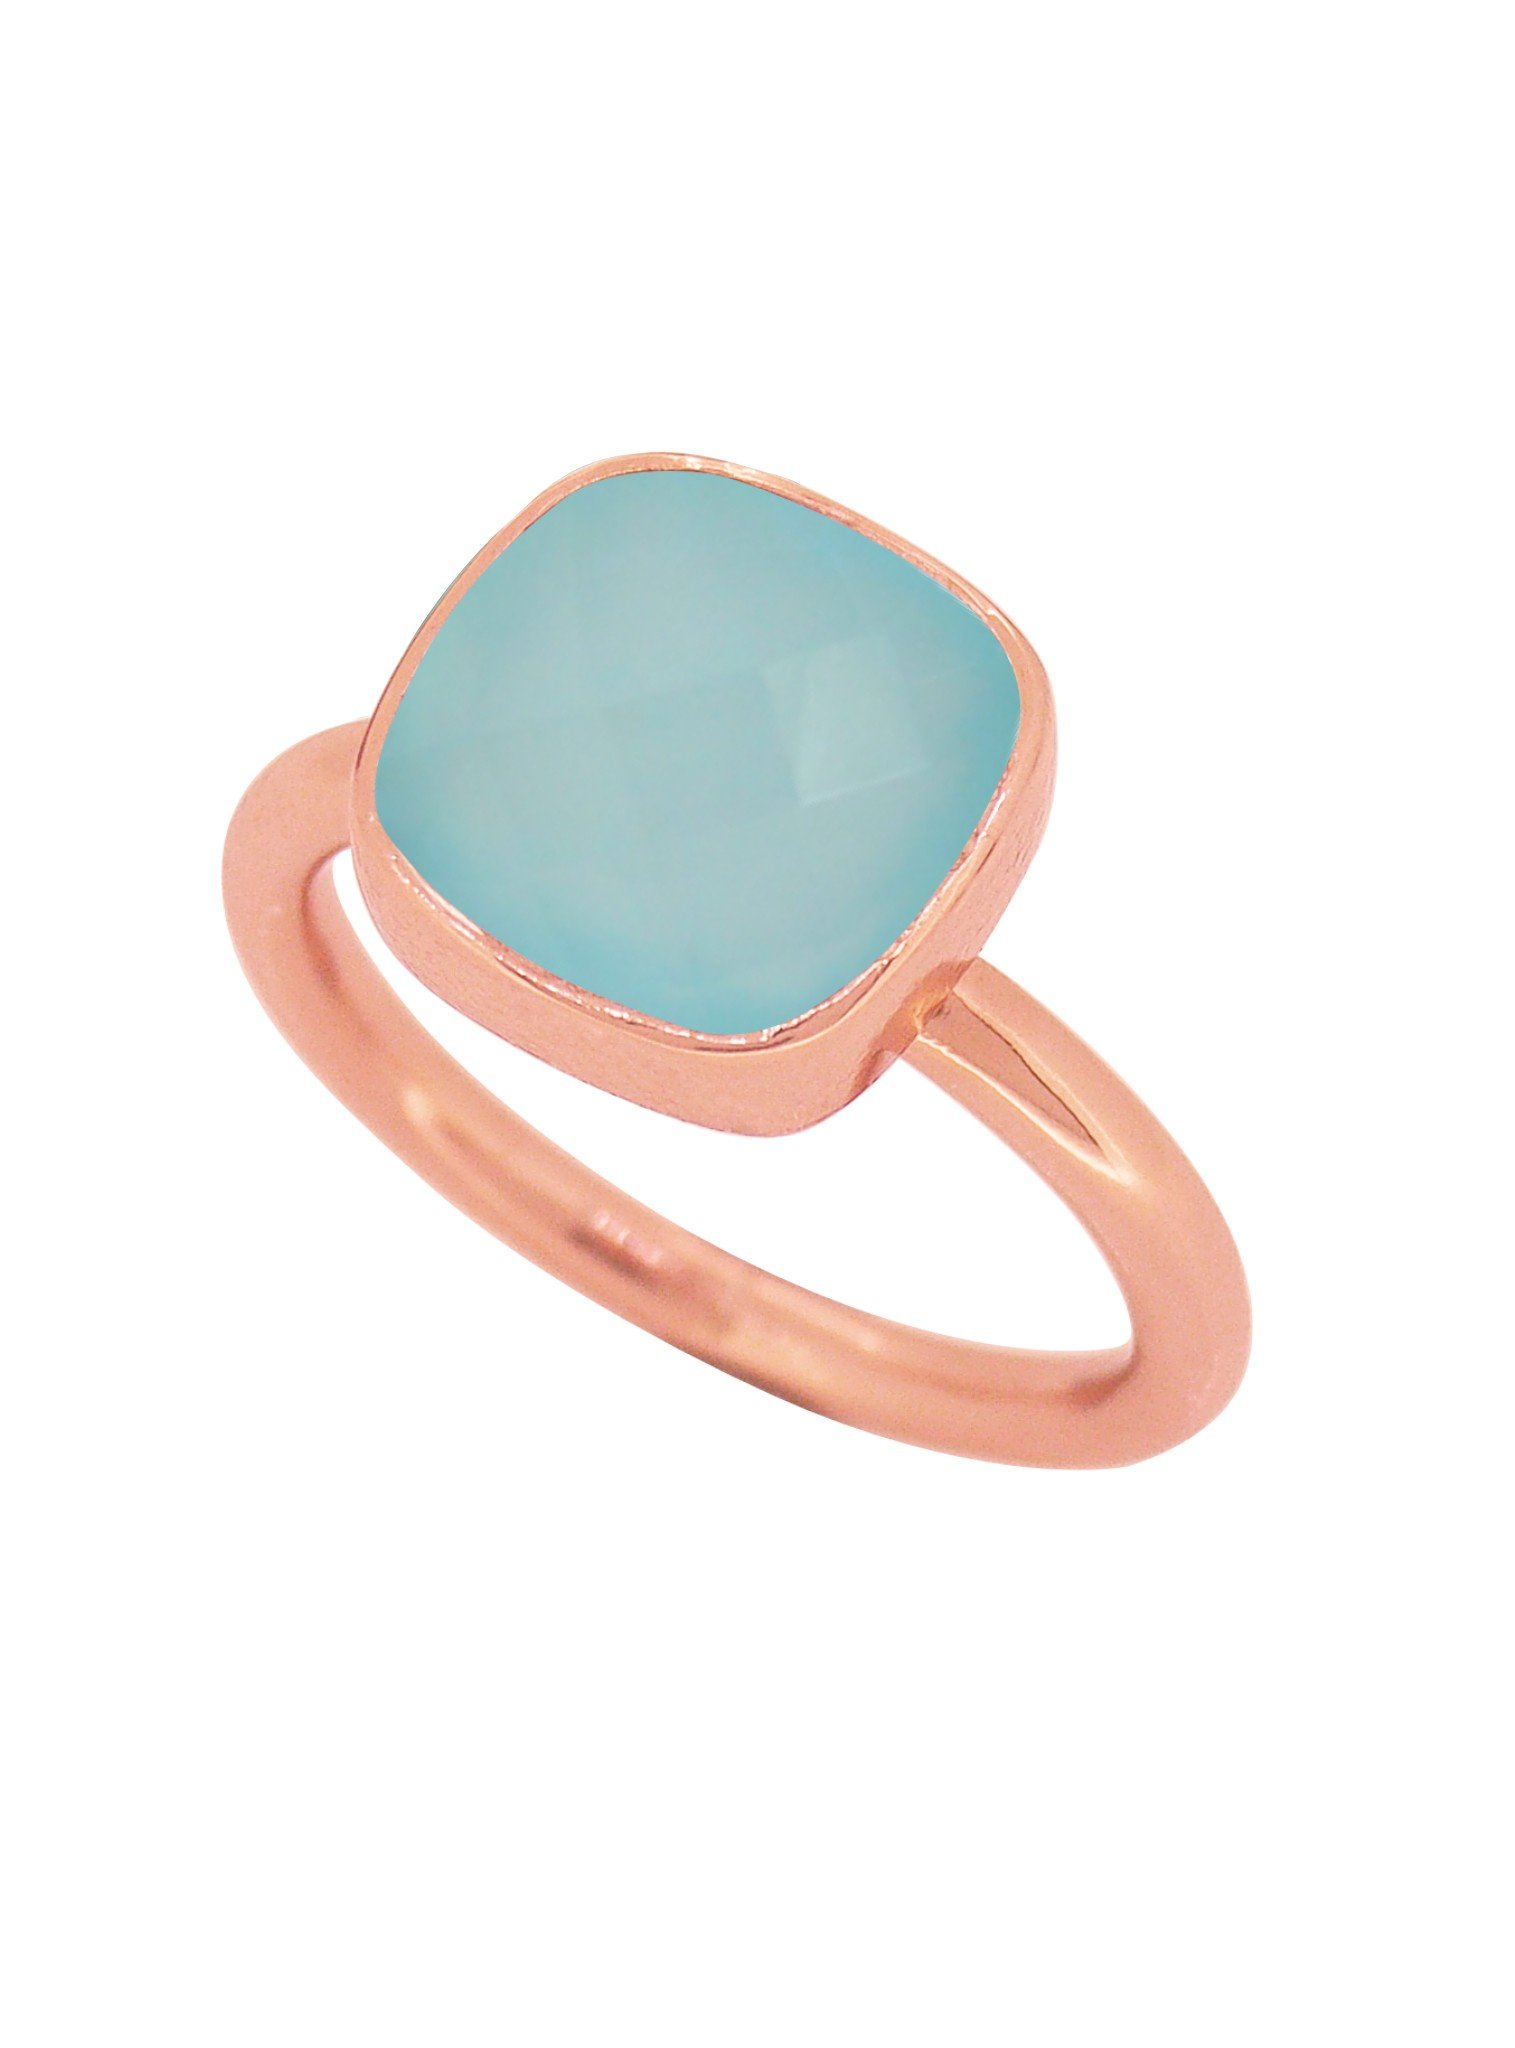 Indie Aqua Chalcedony Gemstone Ring in Rose Gold